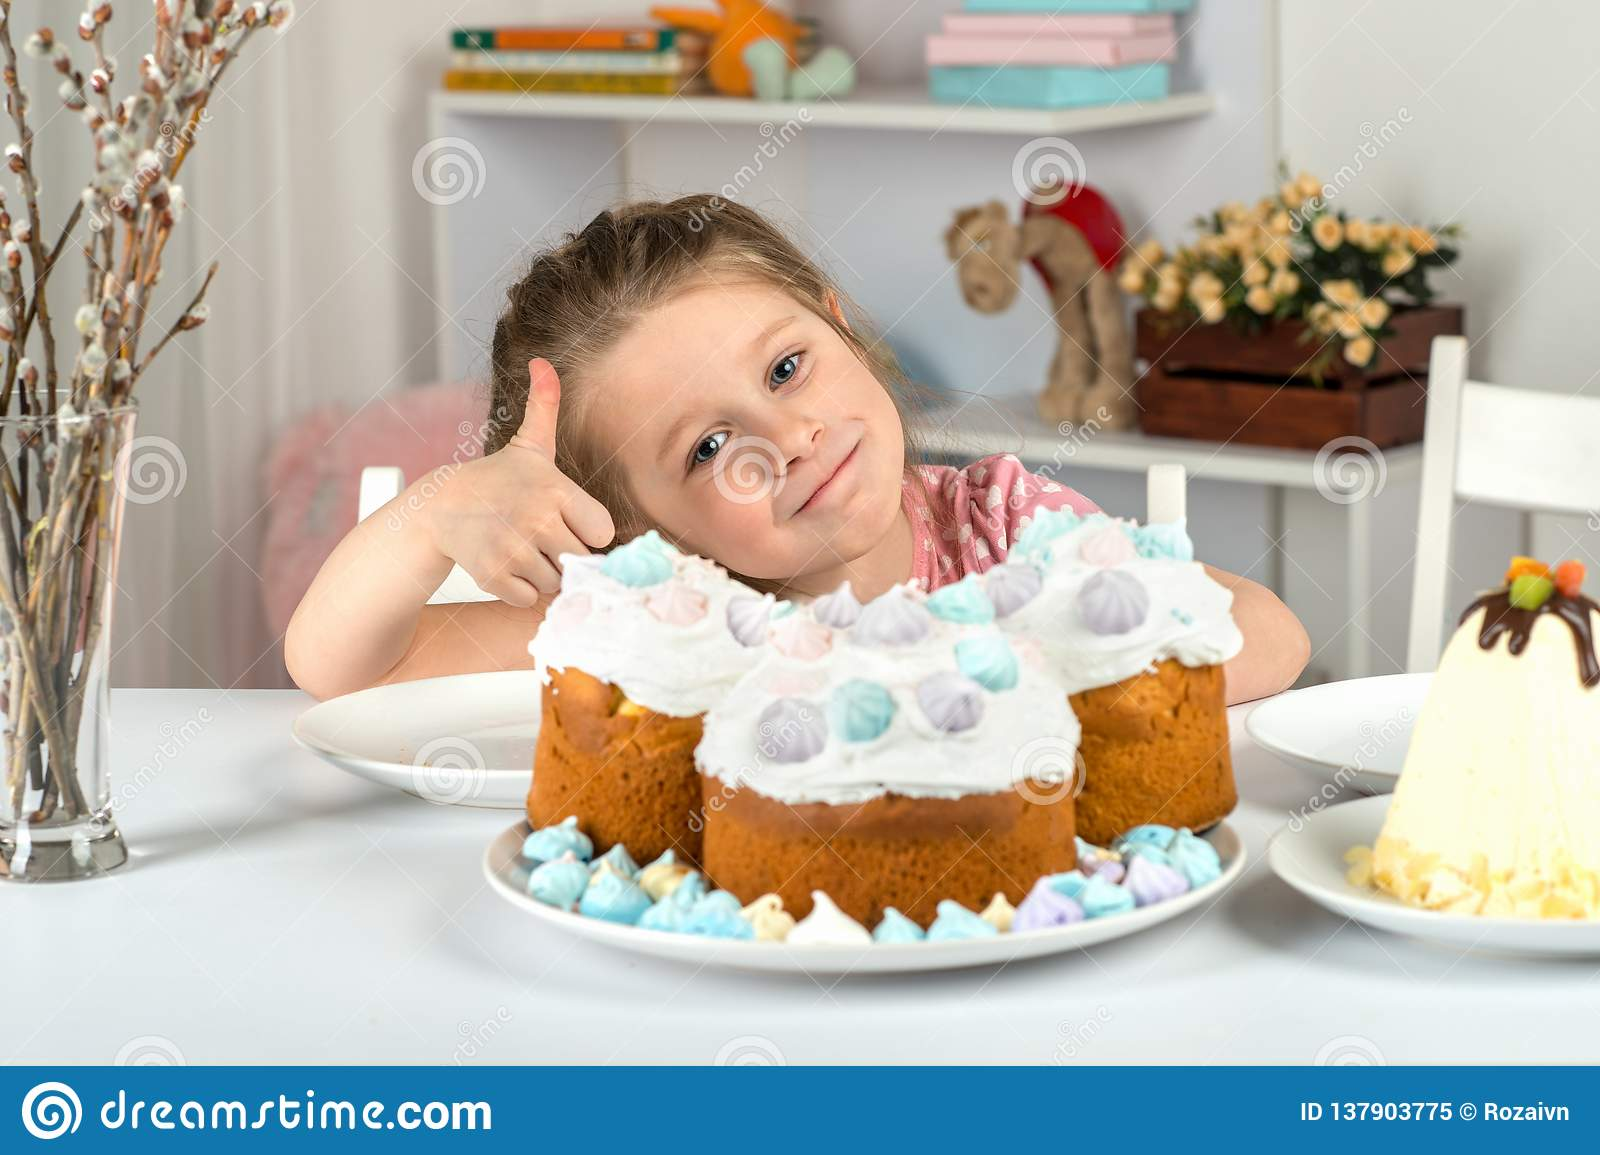 Studio shot of little girl sitting at a table with Easter cakes. She shows thumb up gesture that Easter cake is very tasty